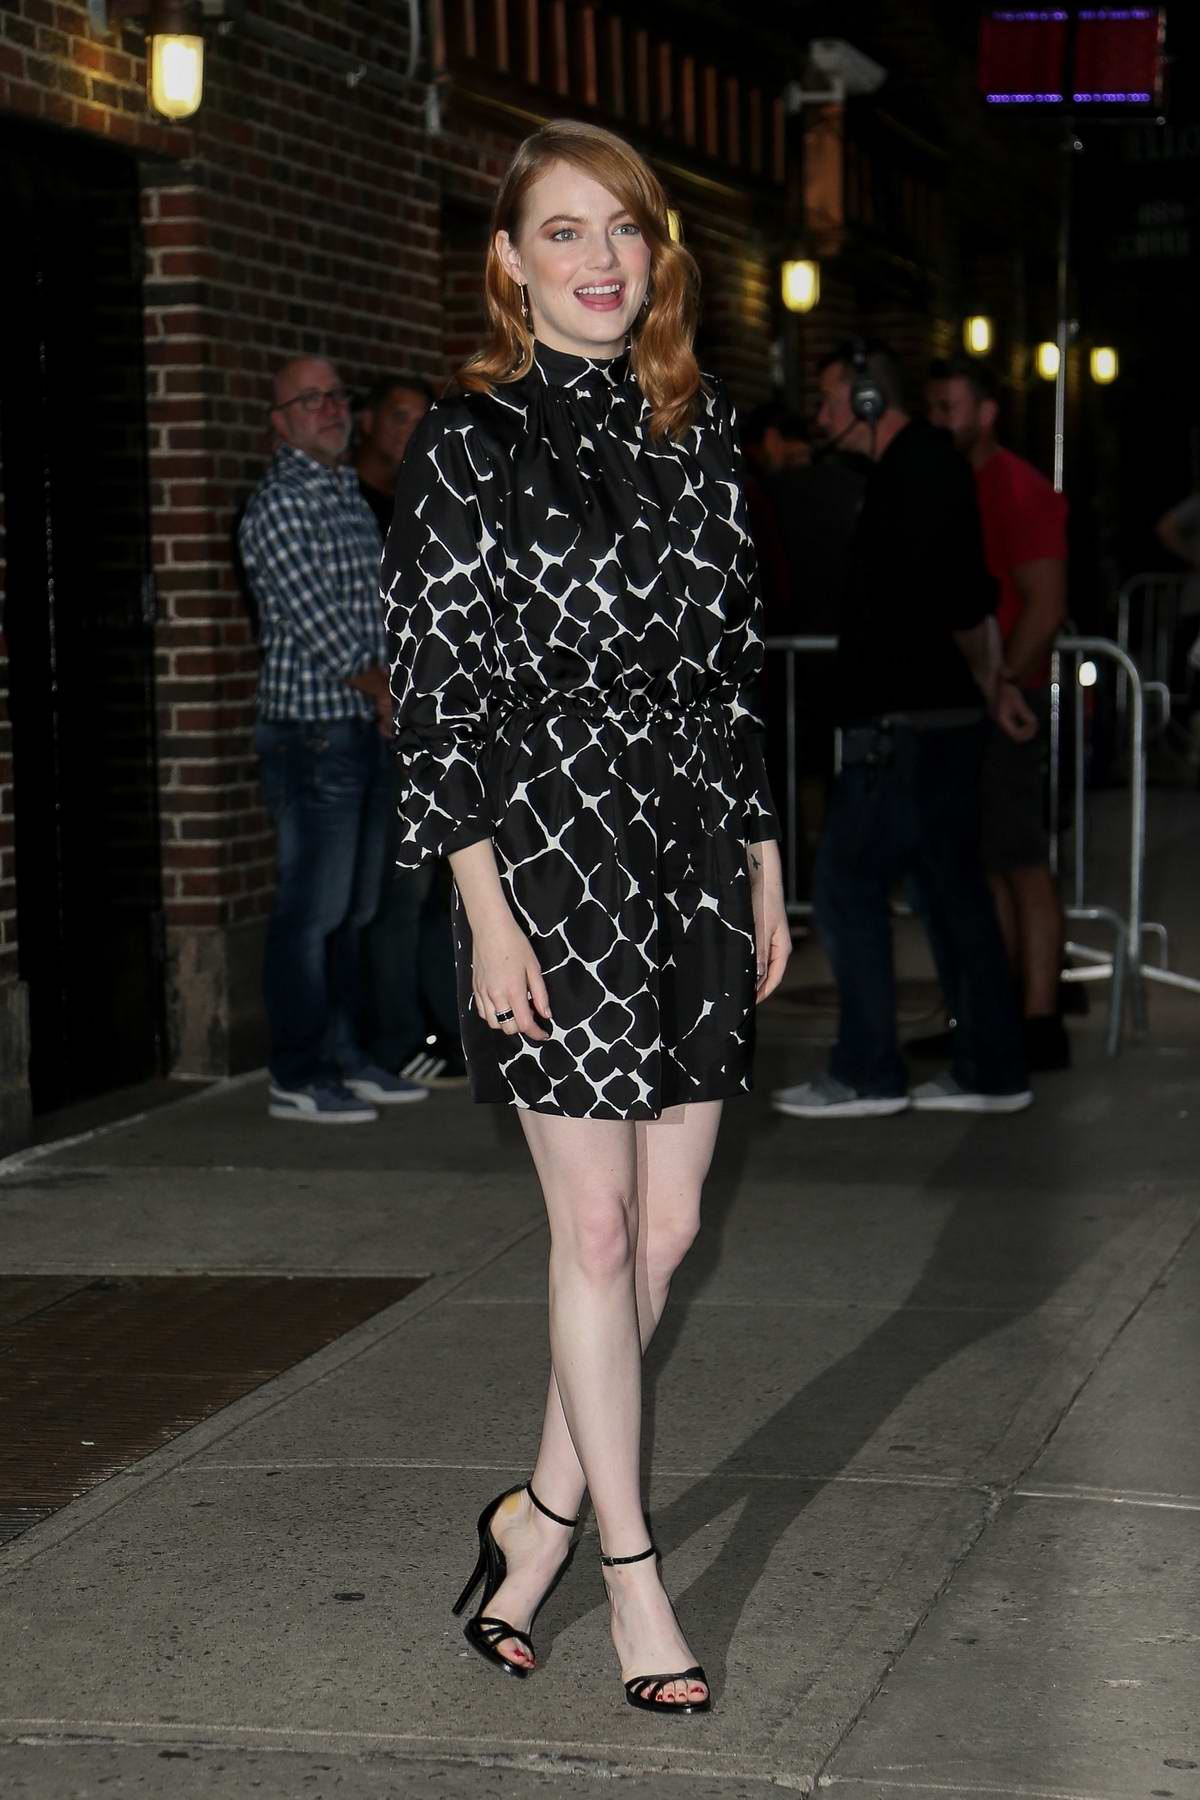 Emma Stone visits 'The Late Show With Stephen Colbert' in New York City